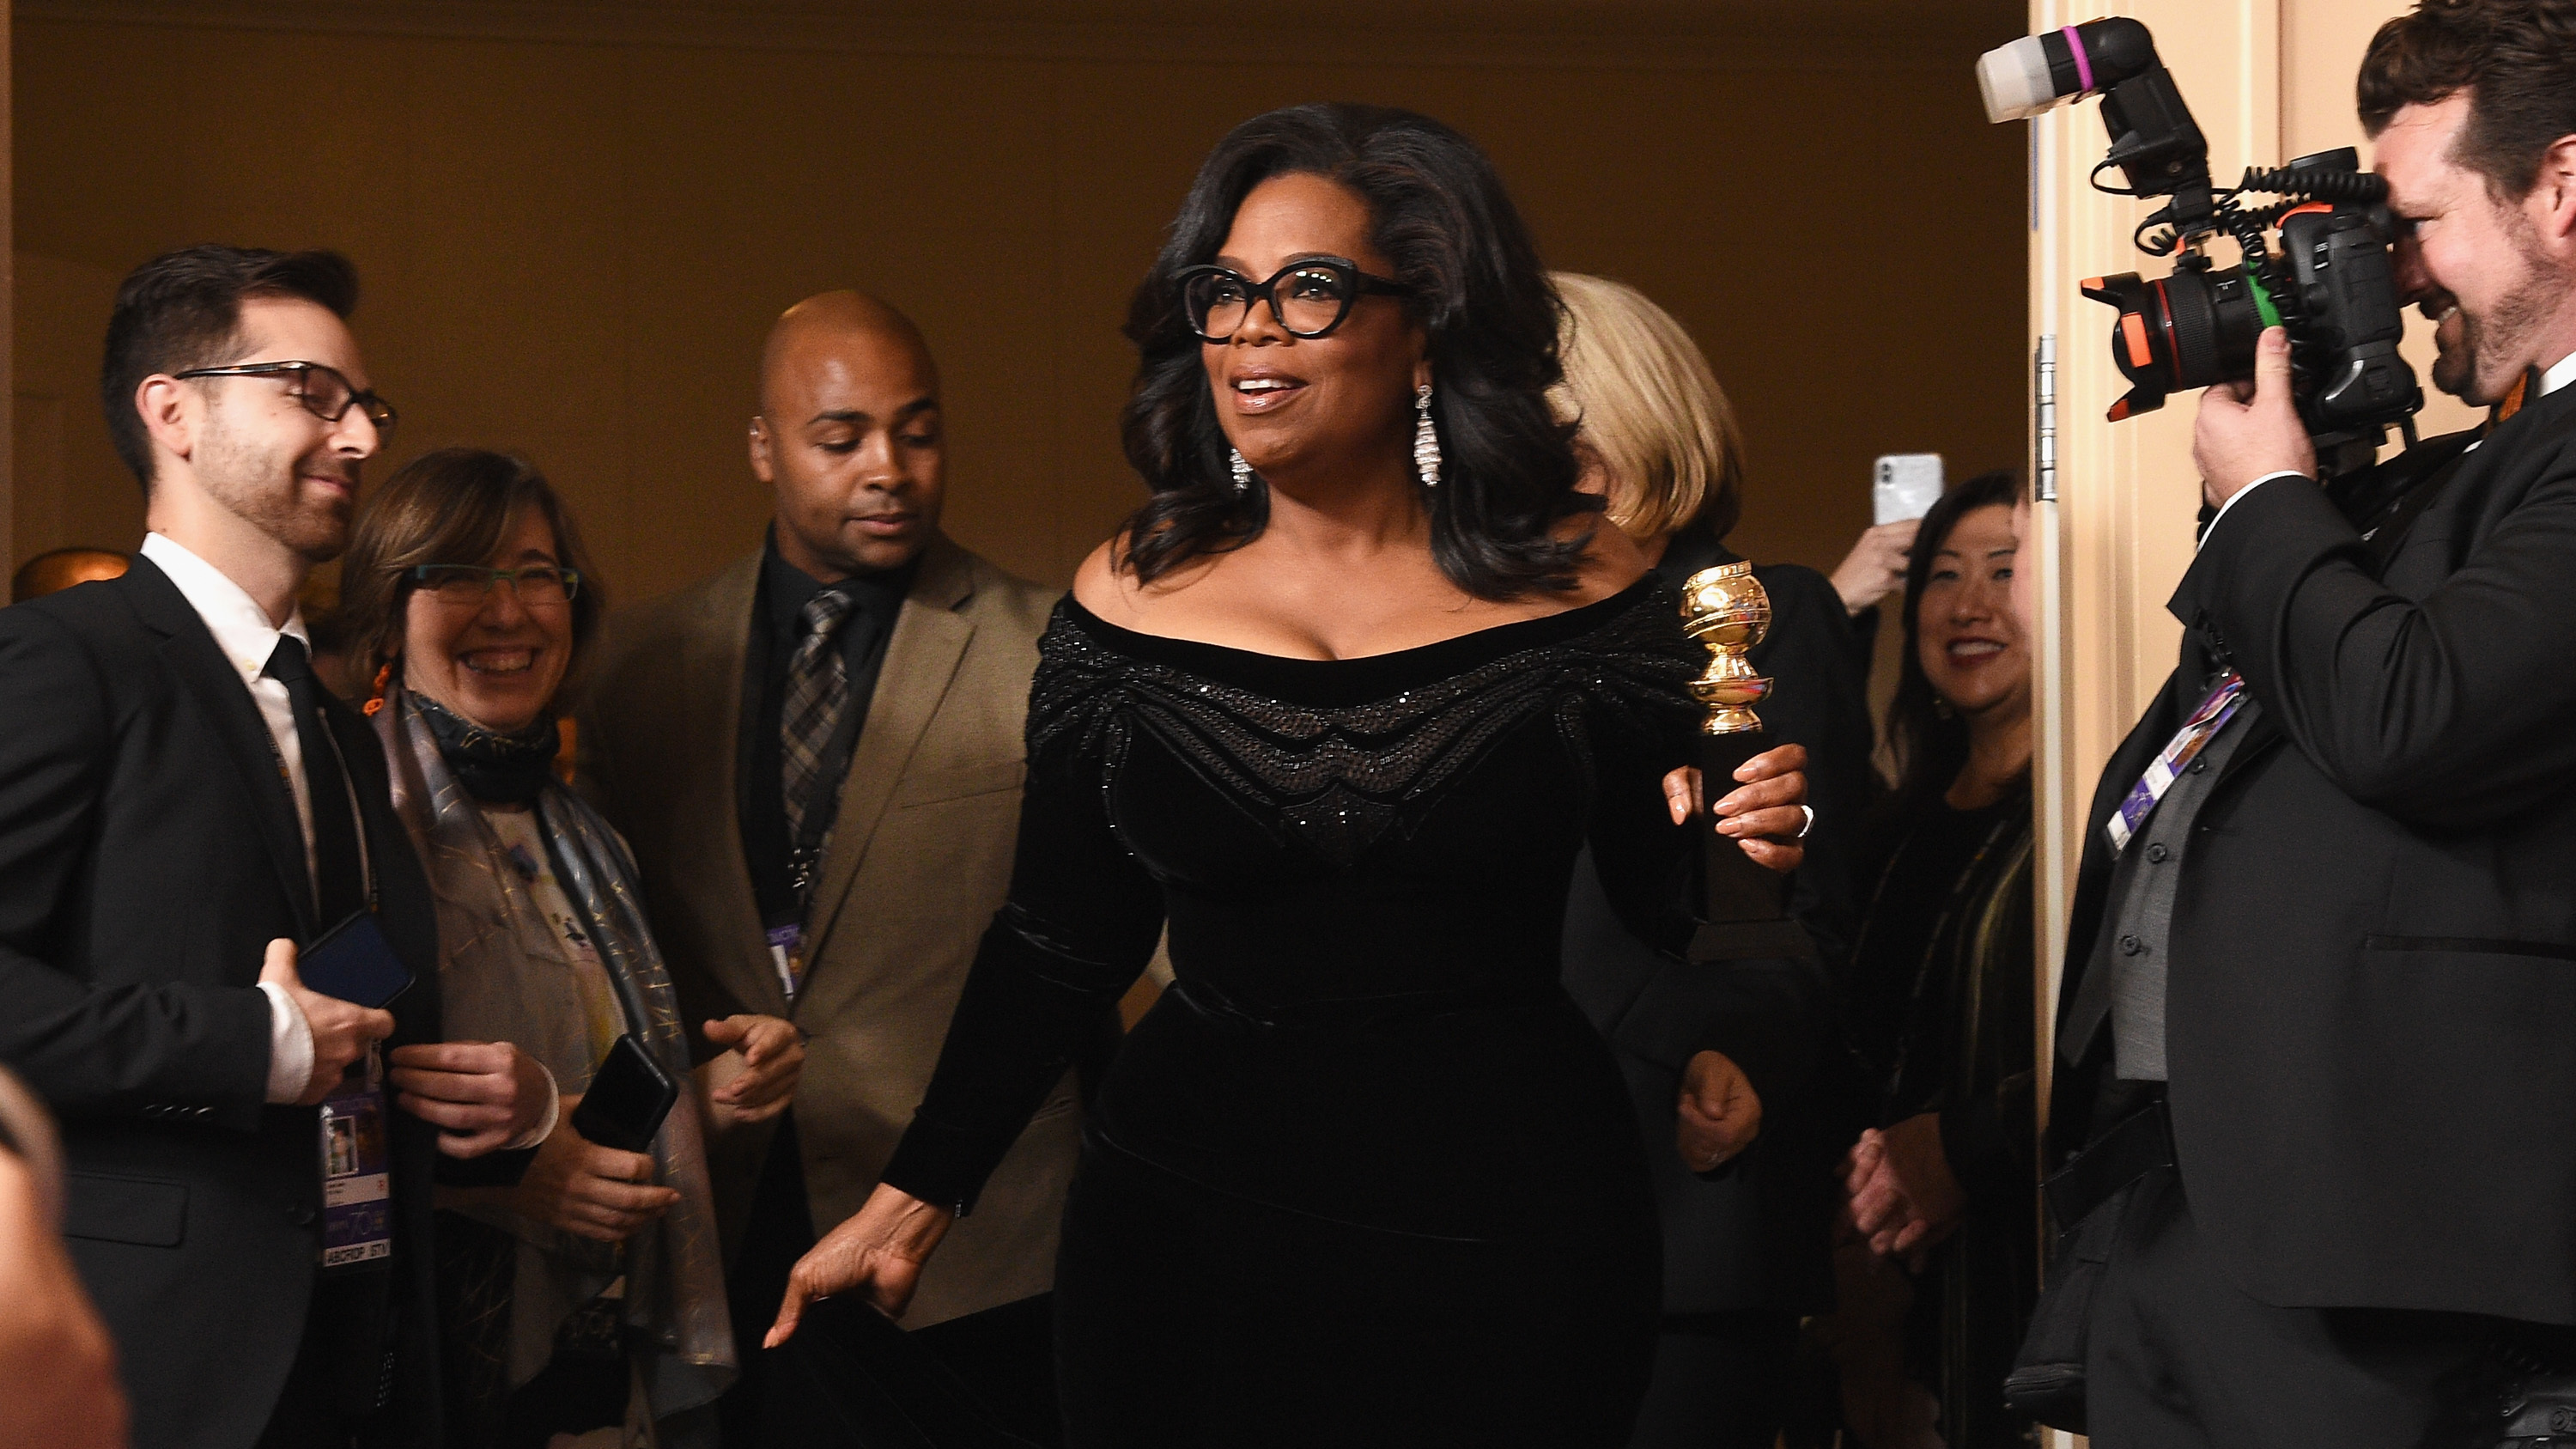 Oprah Winfrey, recipient of the Cecil B. DeMille Award, gave a rousing Golden Globes speech that spurred talk of a 2020 presidential run.